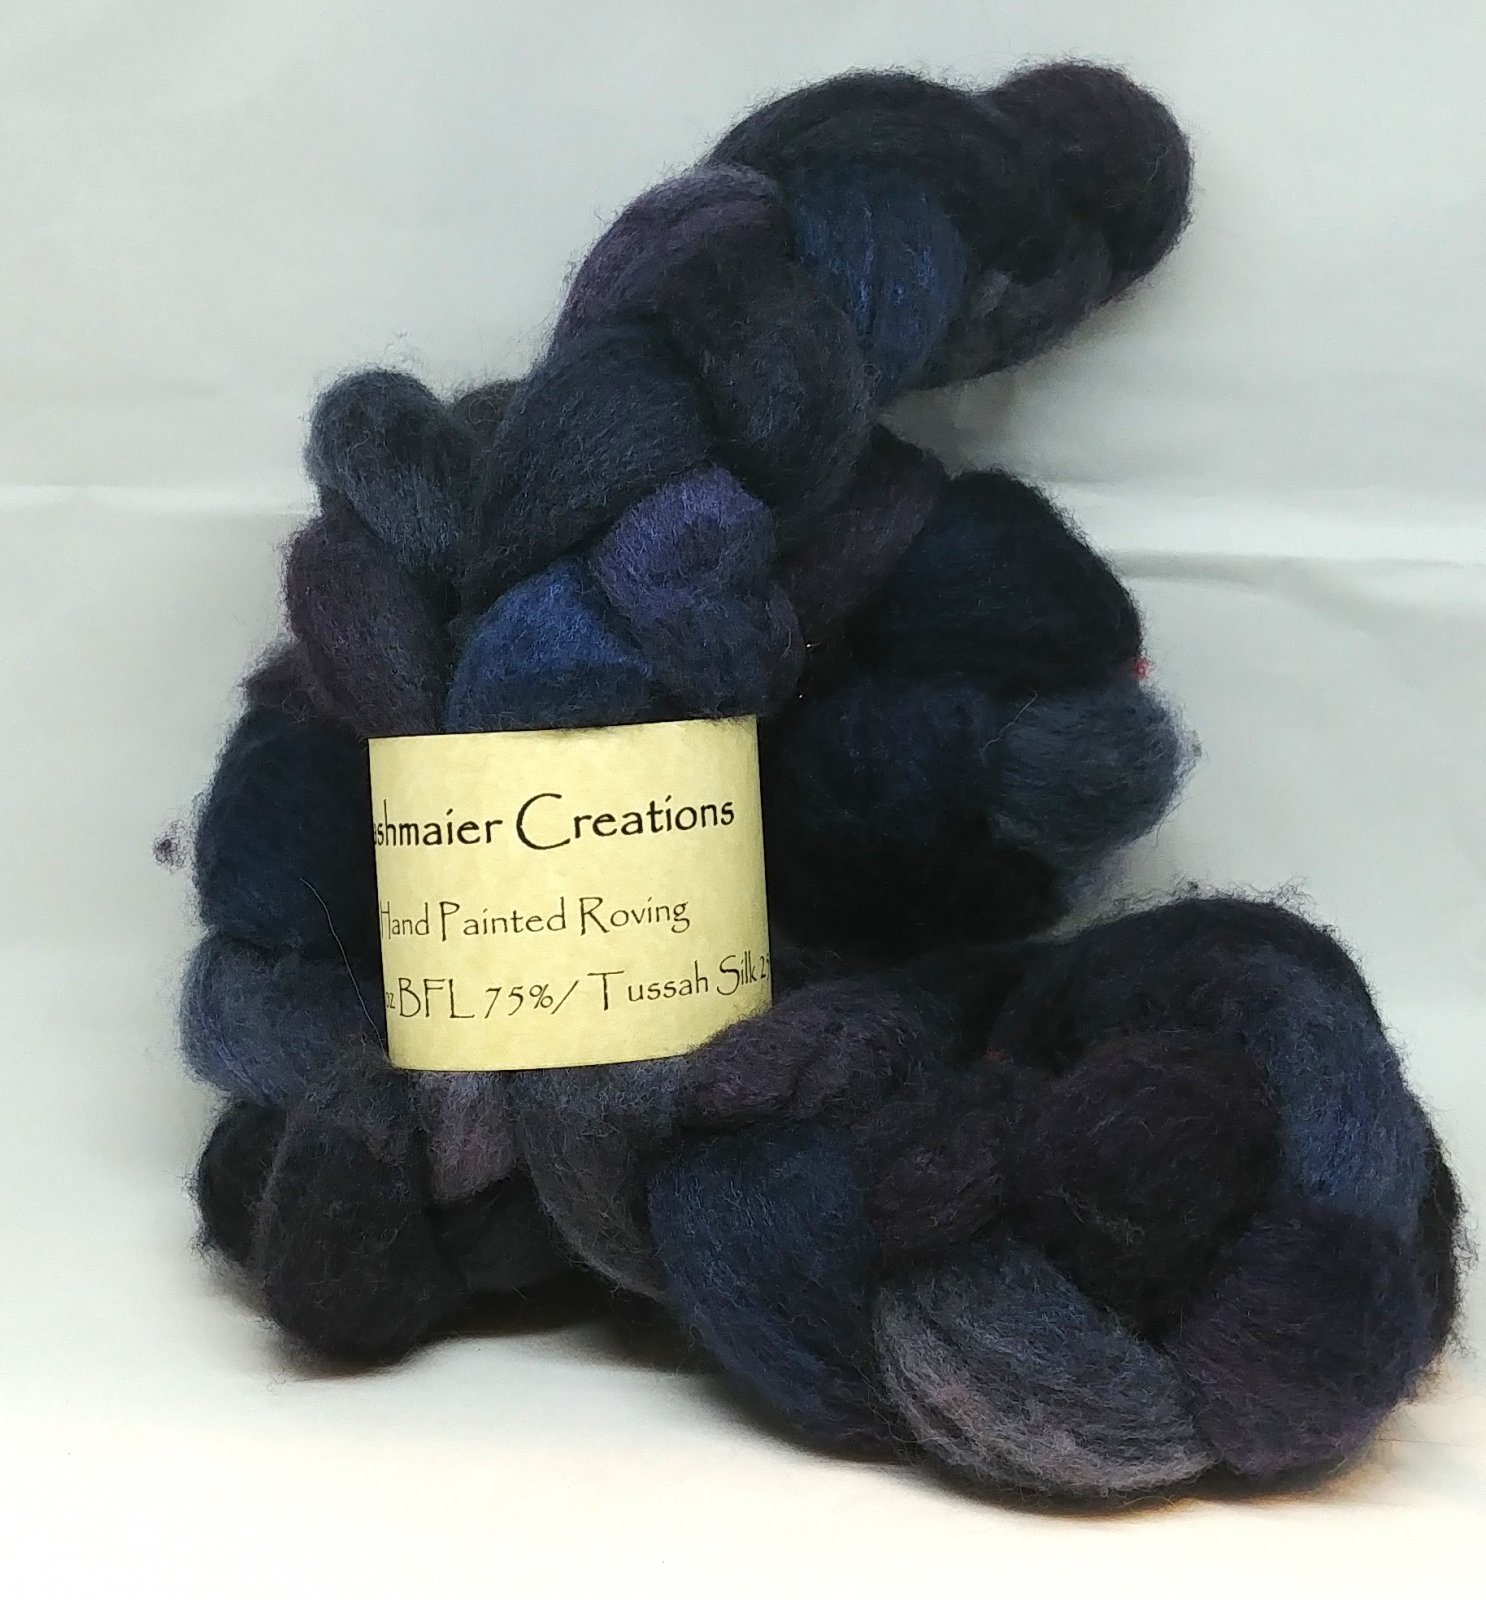 Kashmaier Creations - Hand Painted Roving (BFL 75% Silk 25%)